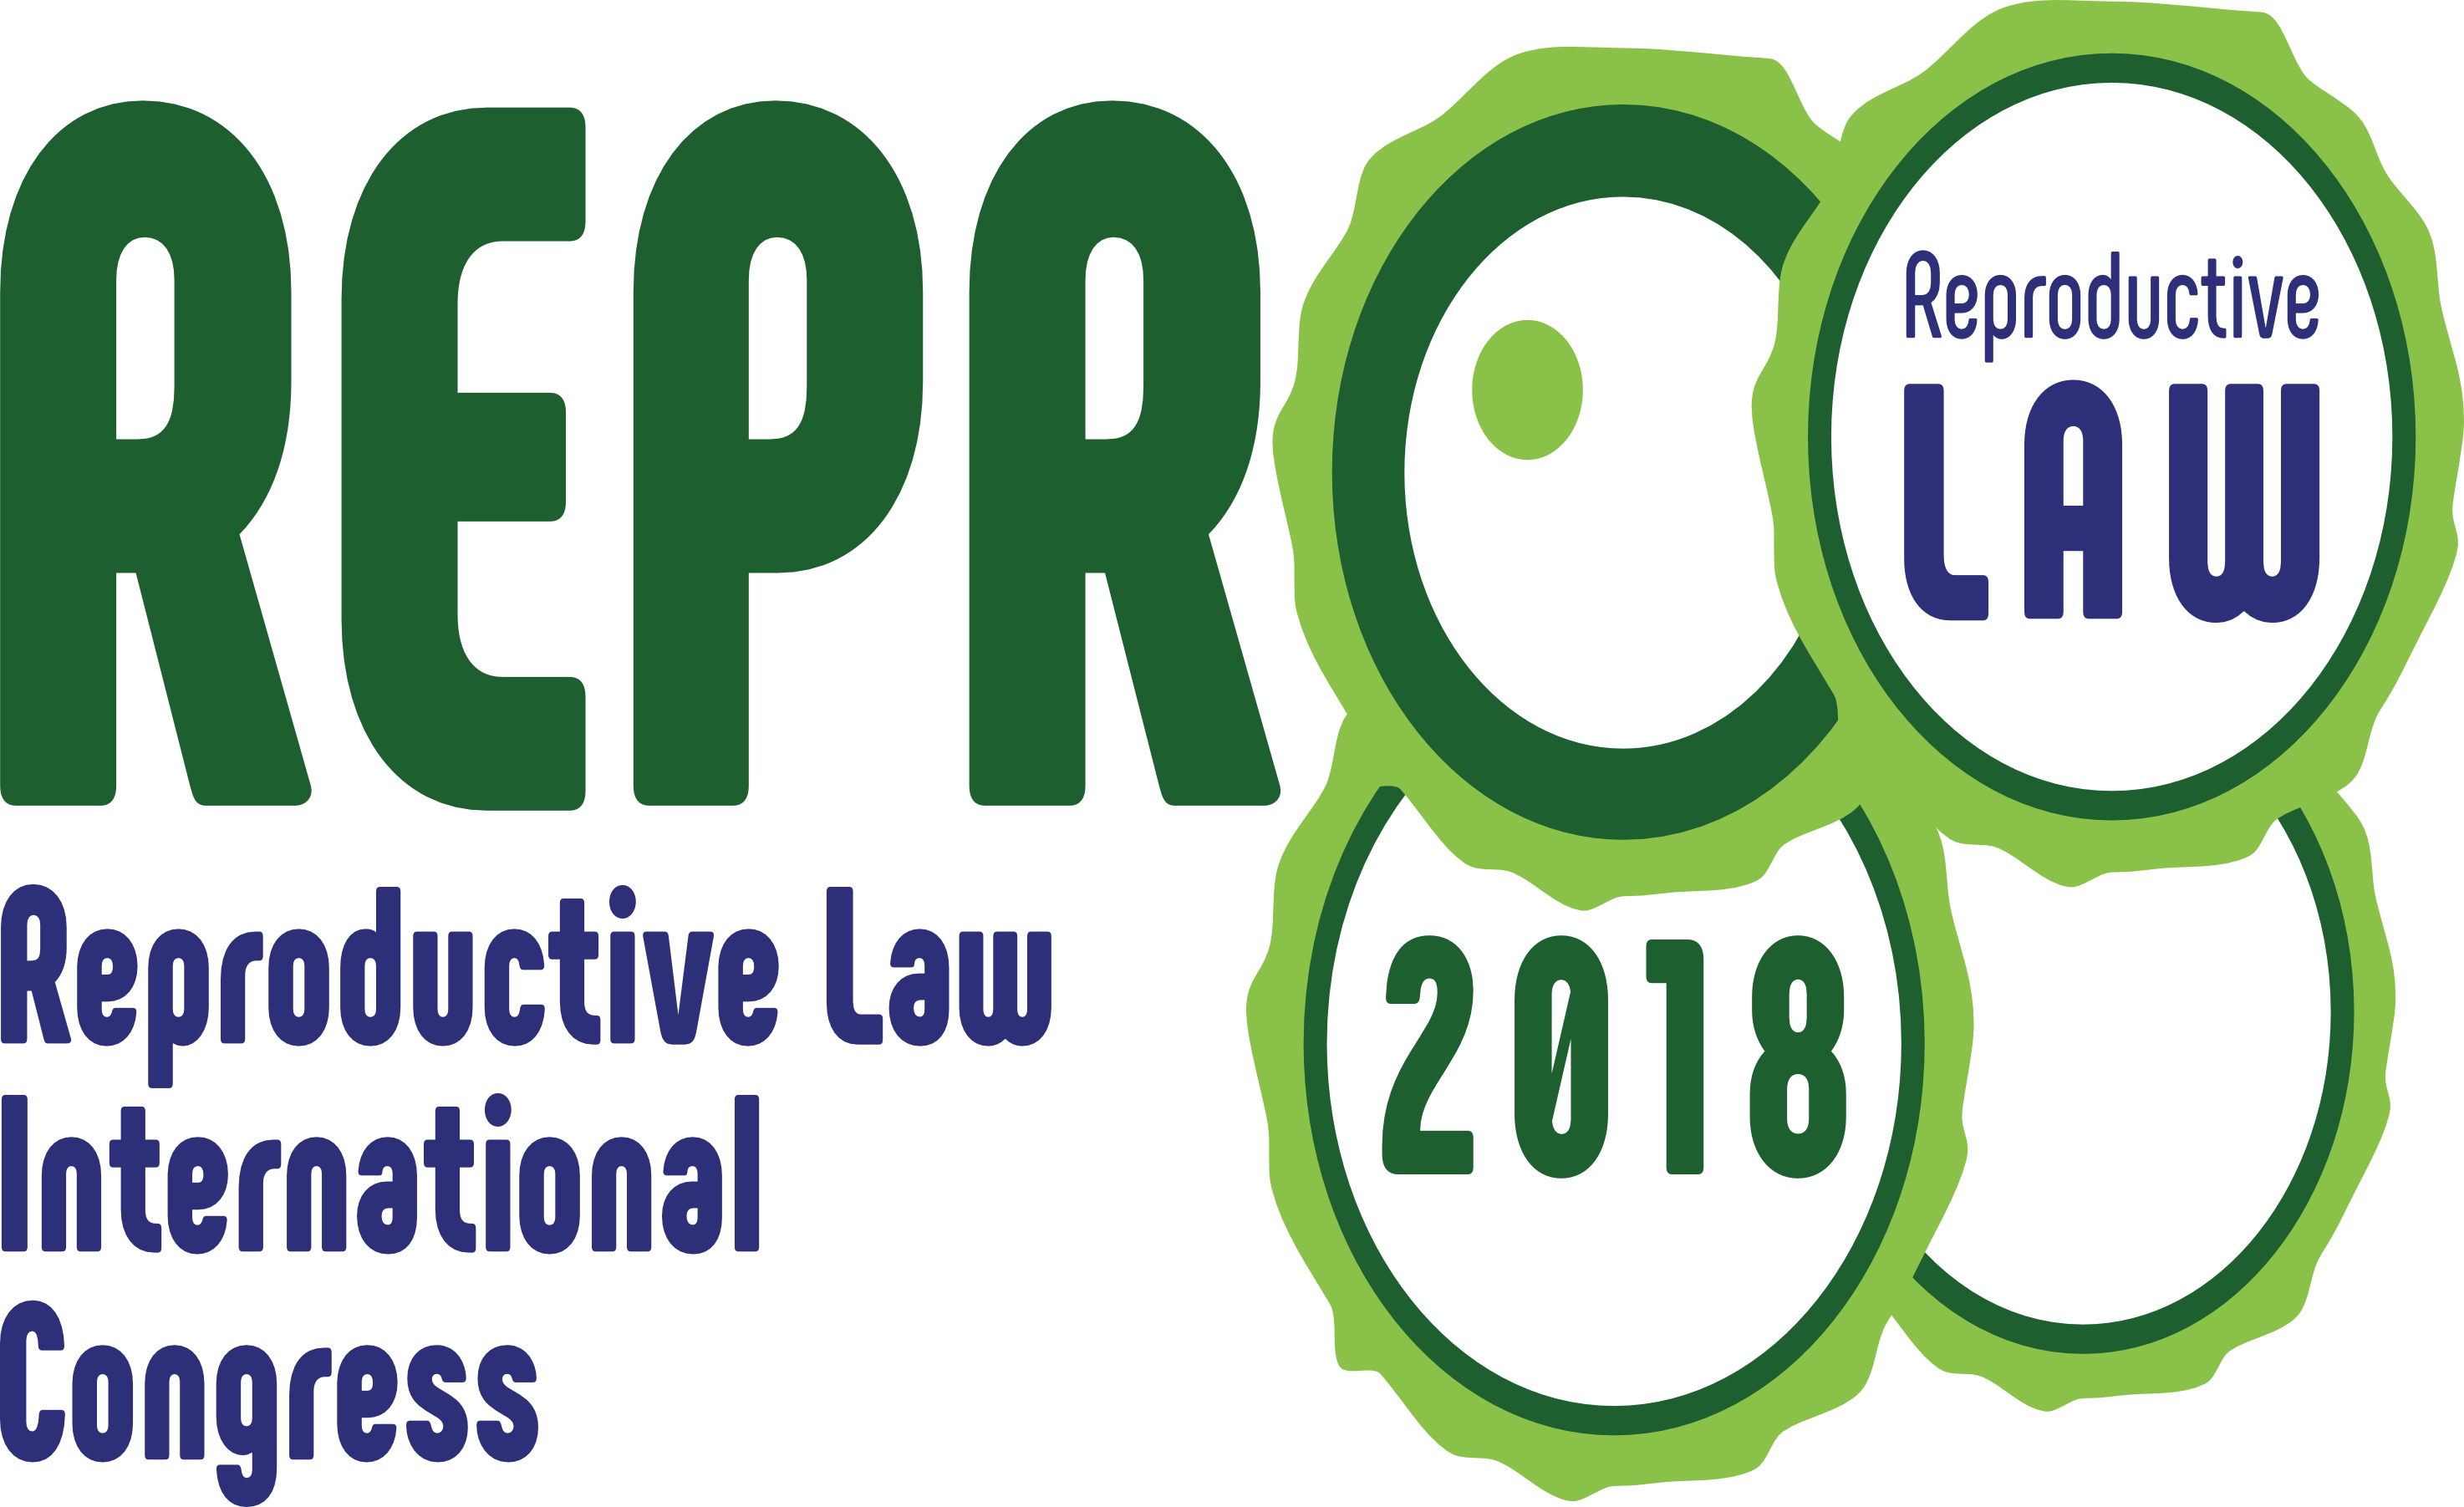 Reproductive Law Congress 2020